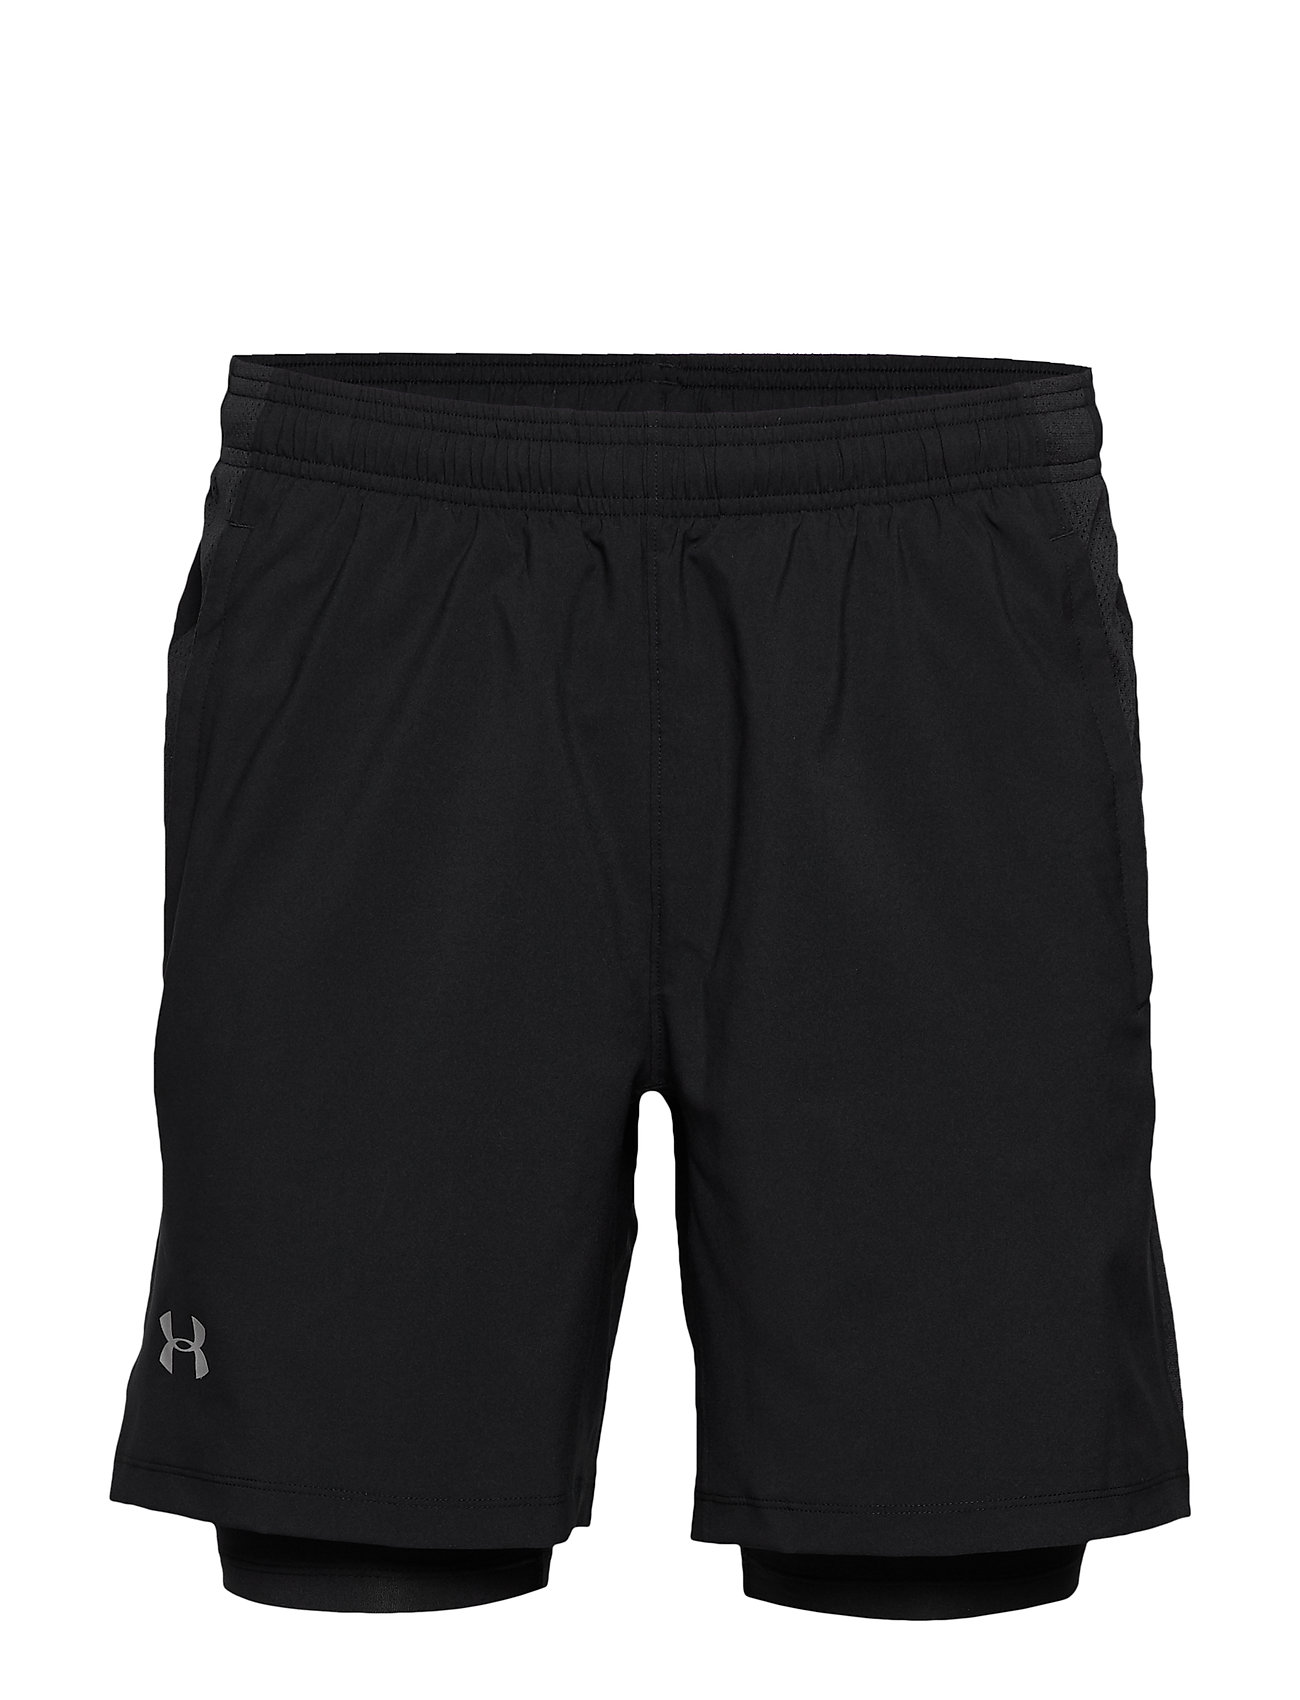 Under Armour UA LAUNCH SW 2-IN-1 SHORT - BLACK